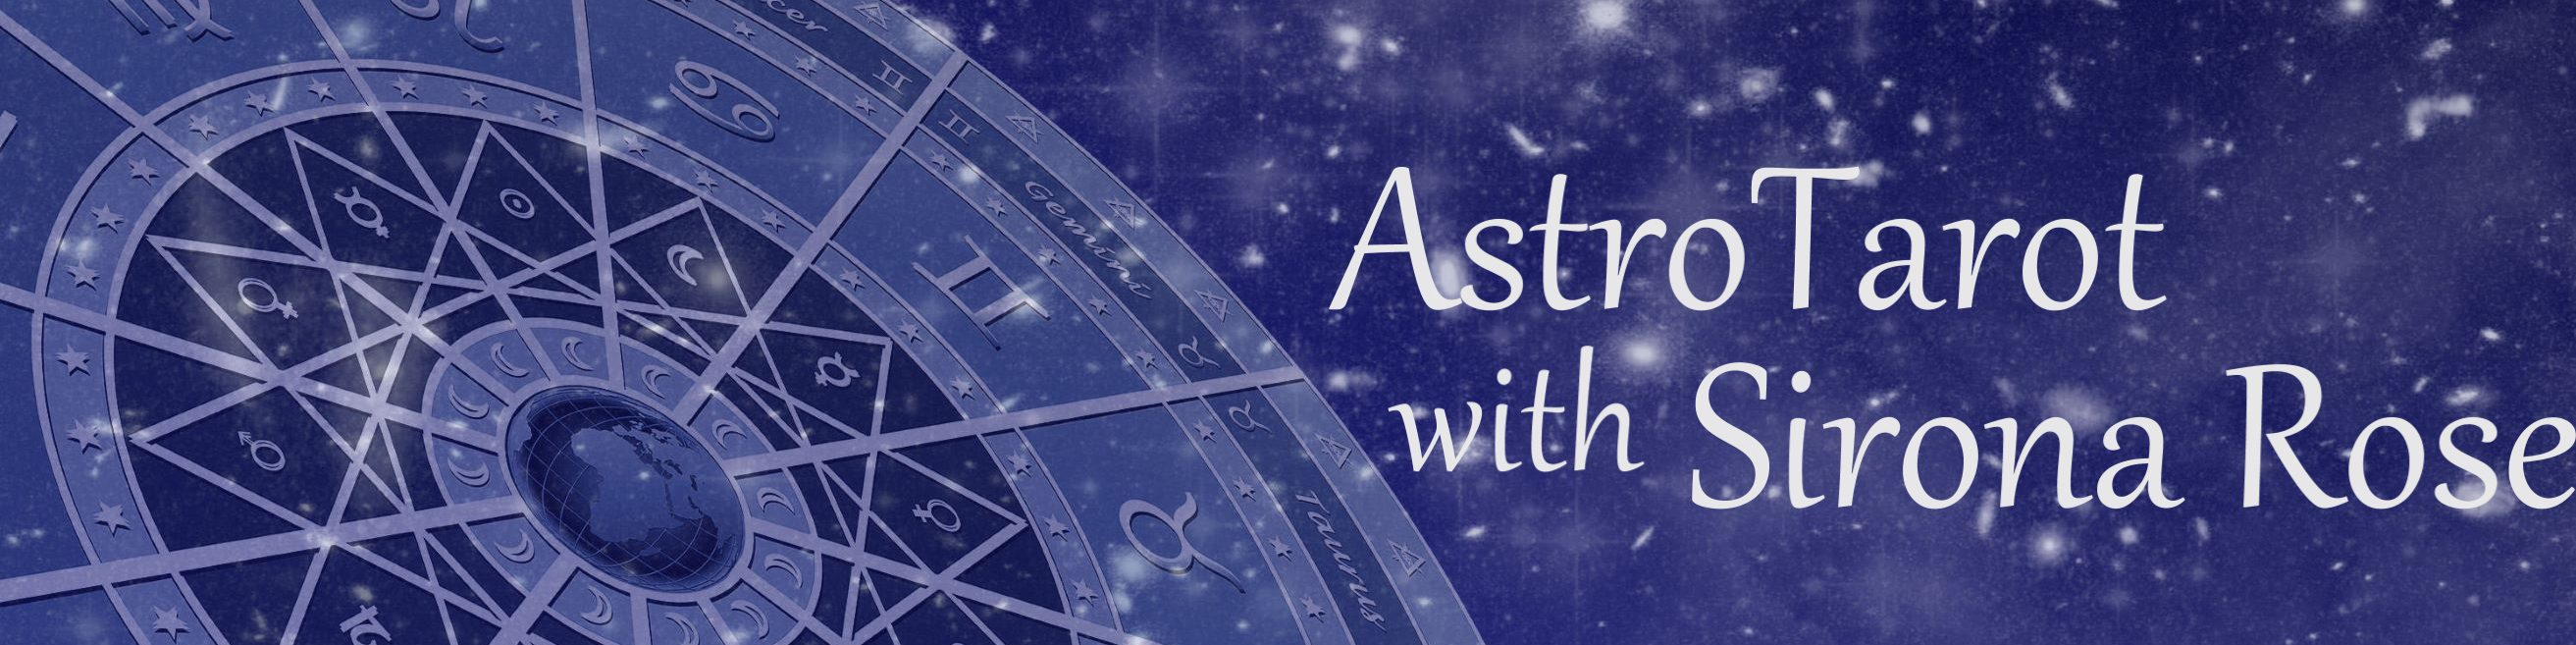 AstroTarot Report